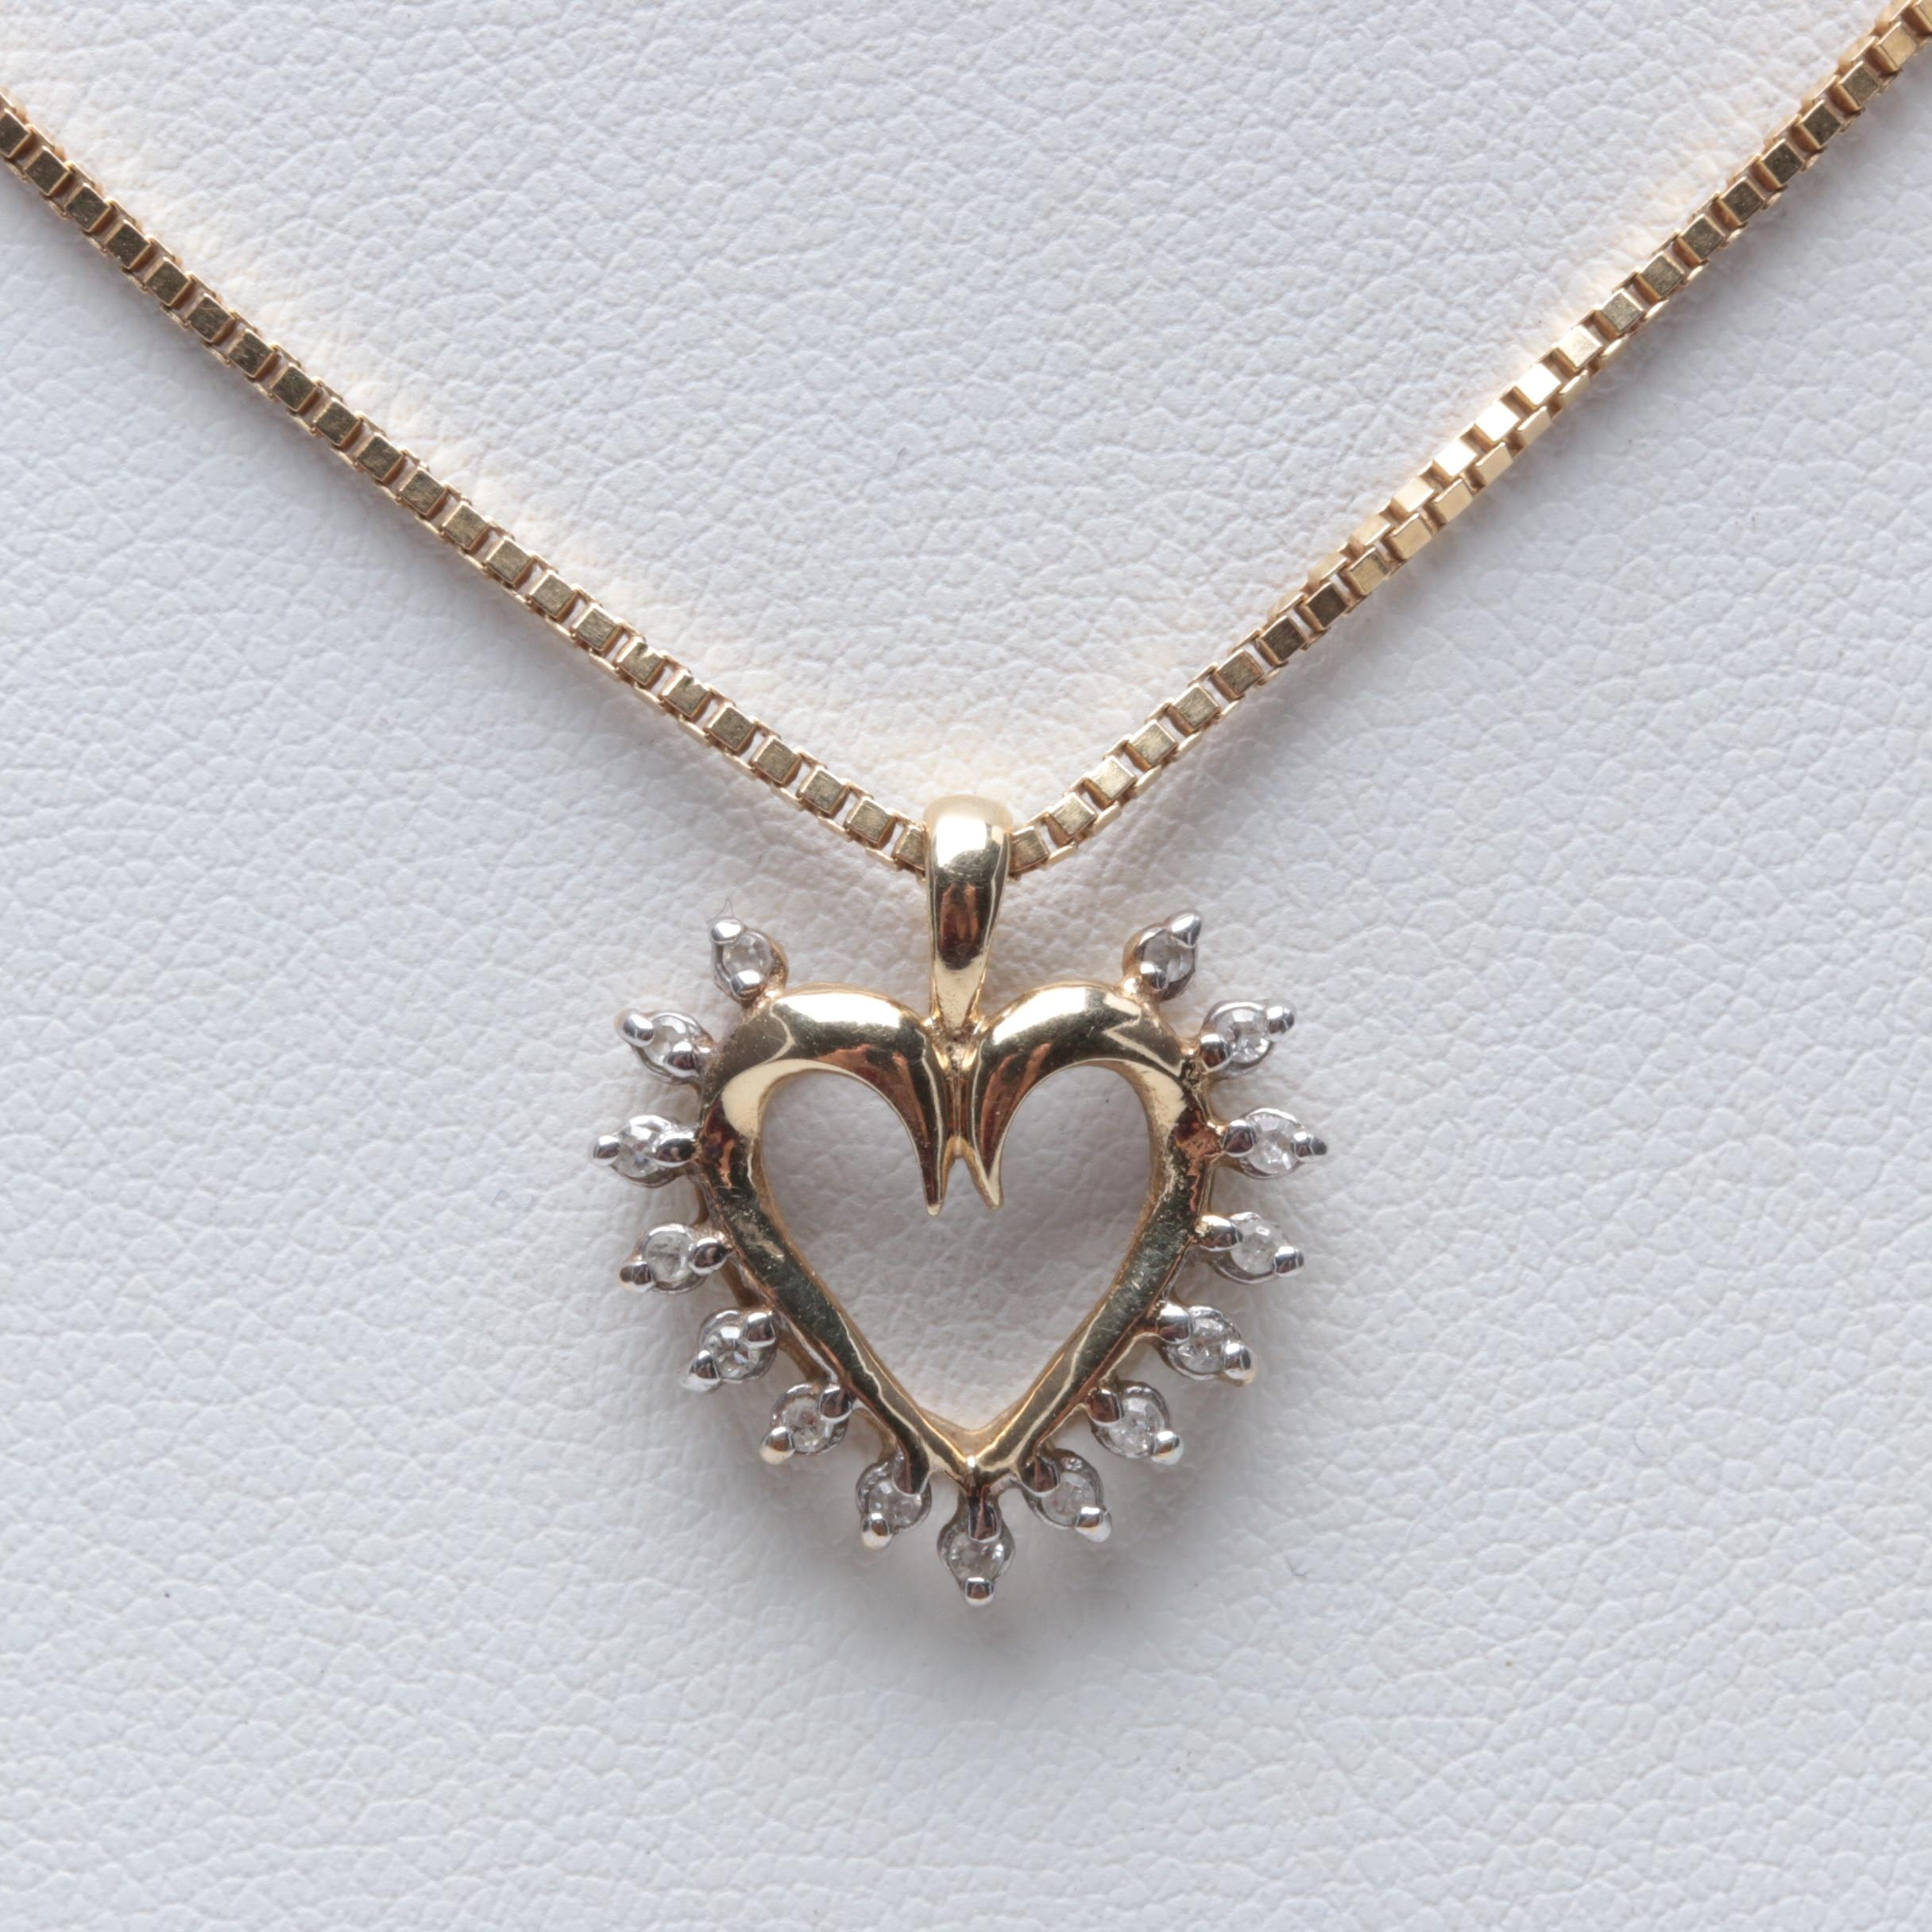 10K Yellow Gold Diamond Heart Pendant and 14K Yellow Gold Necklace